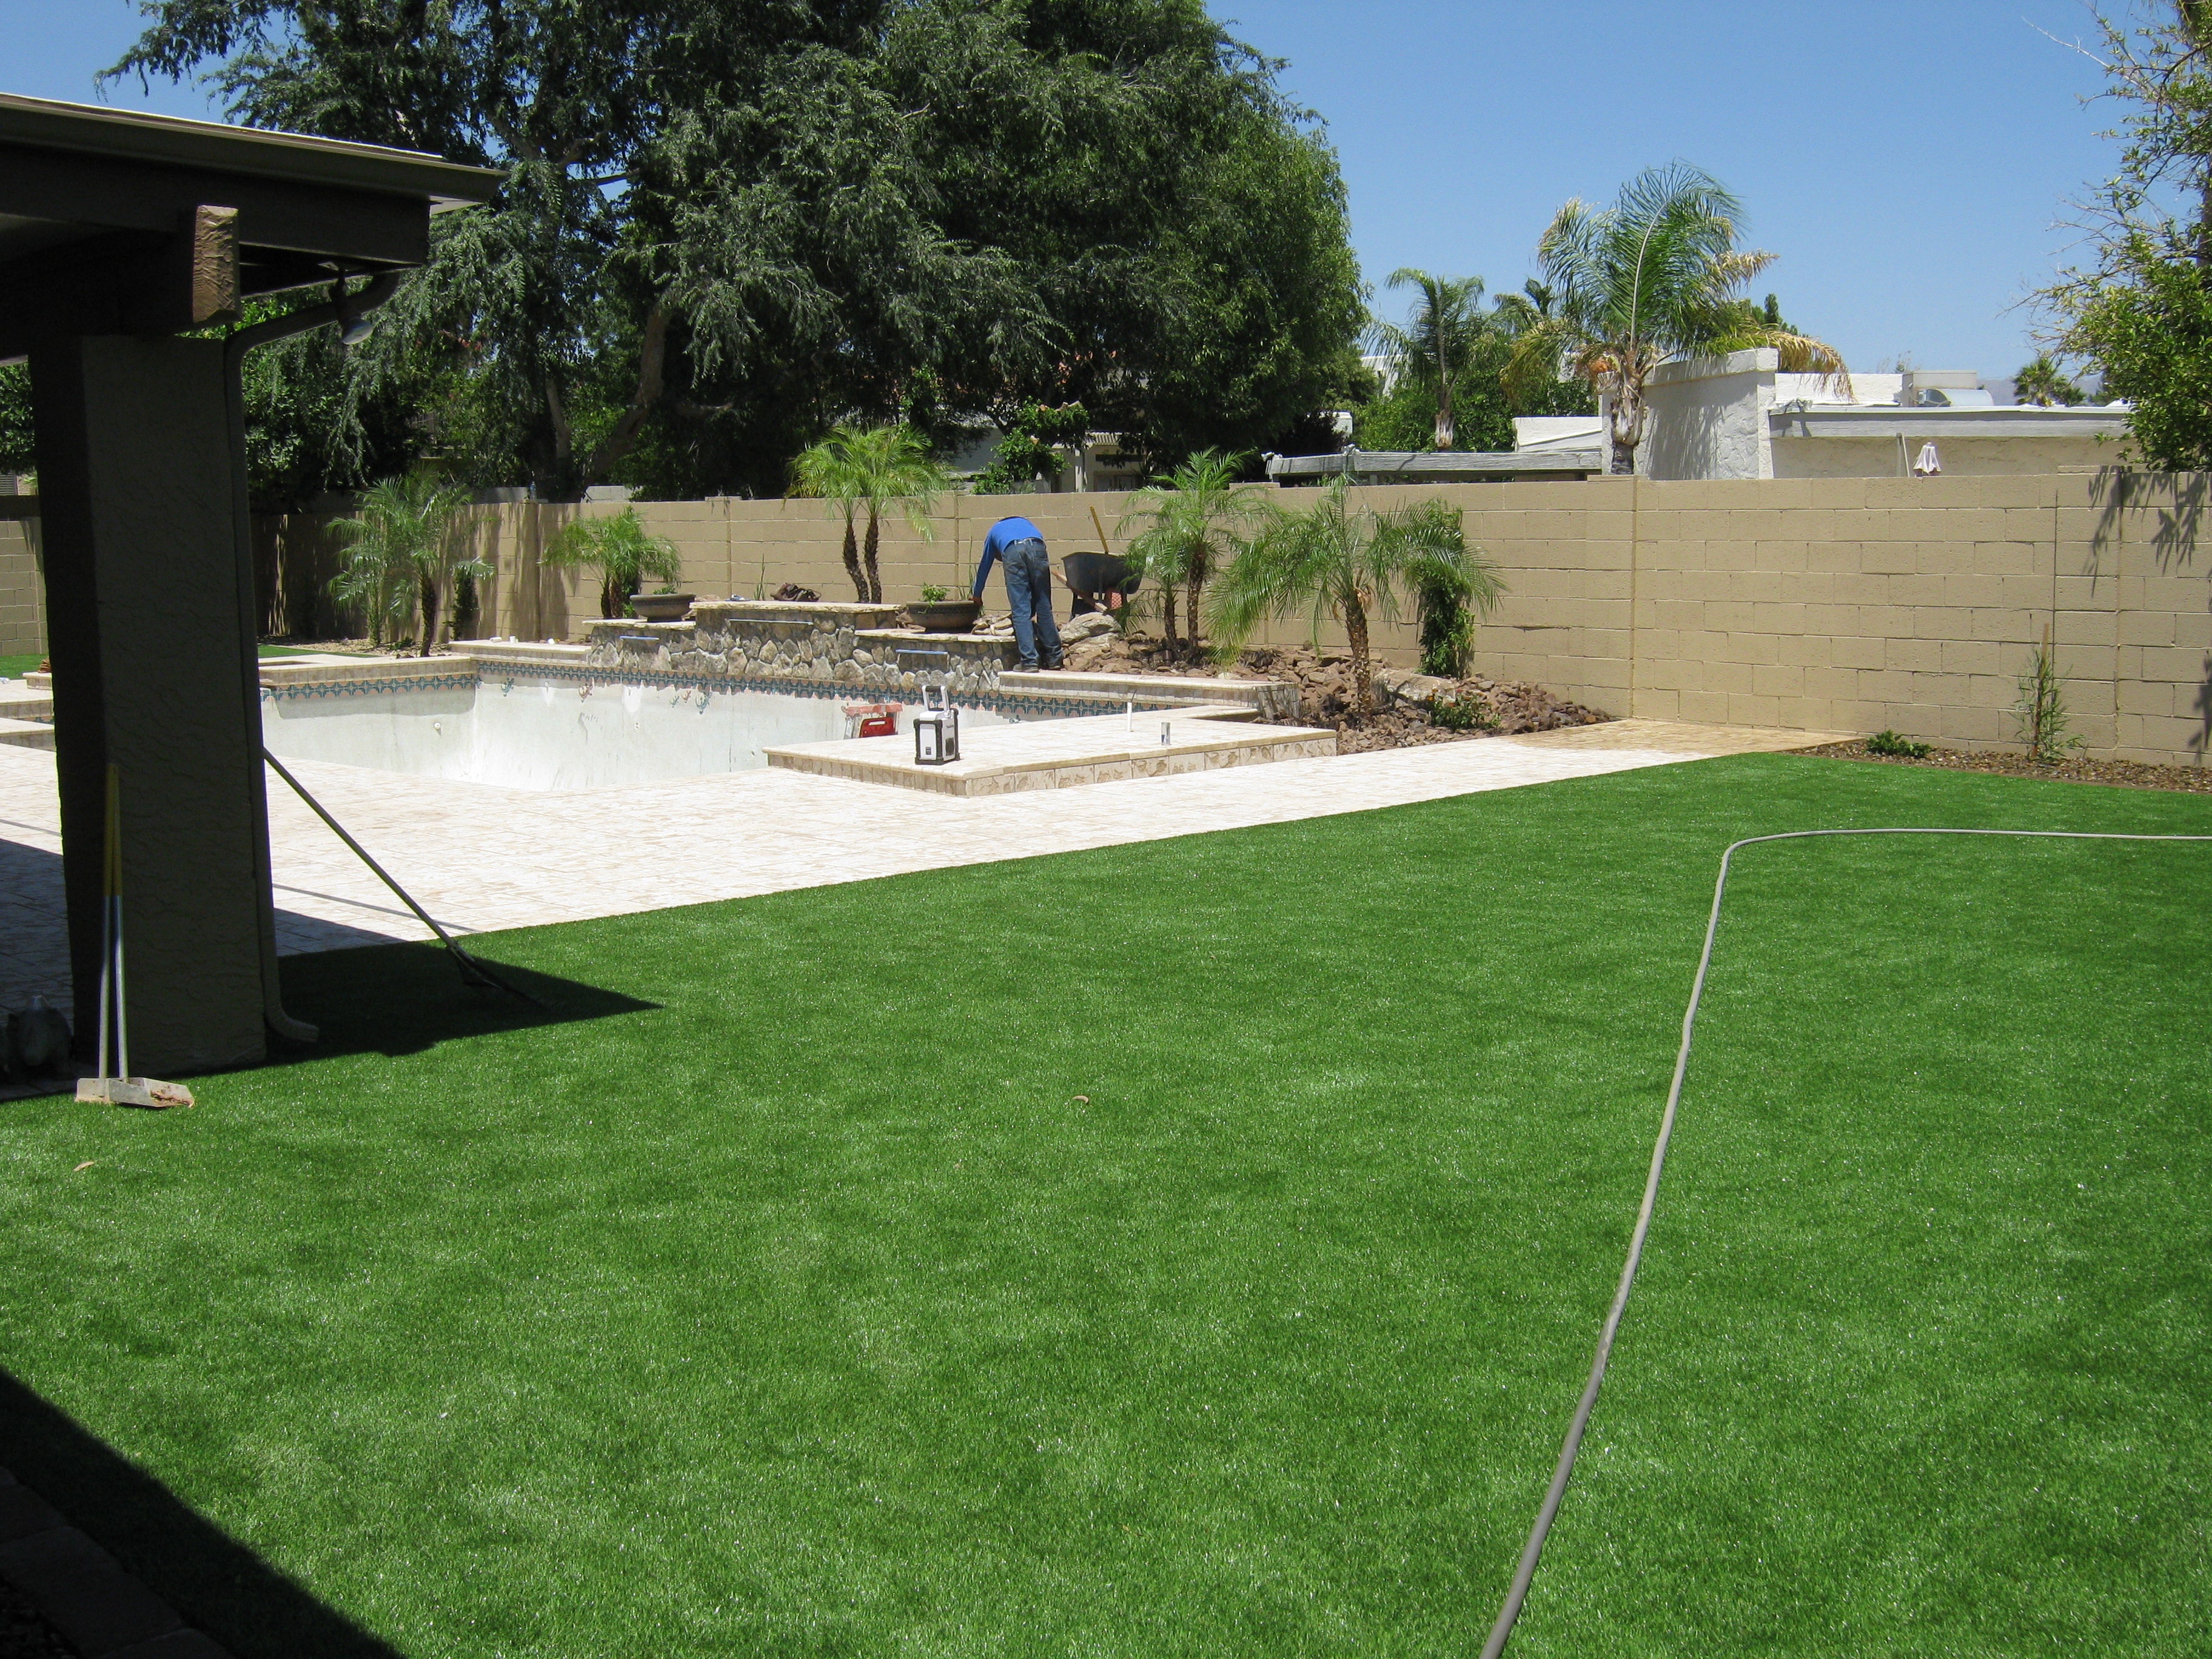 pool-landscape-turf-zoom-in-on-water-feature-crop